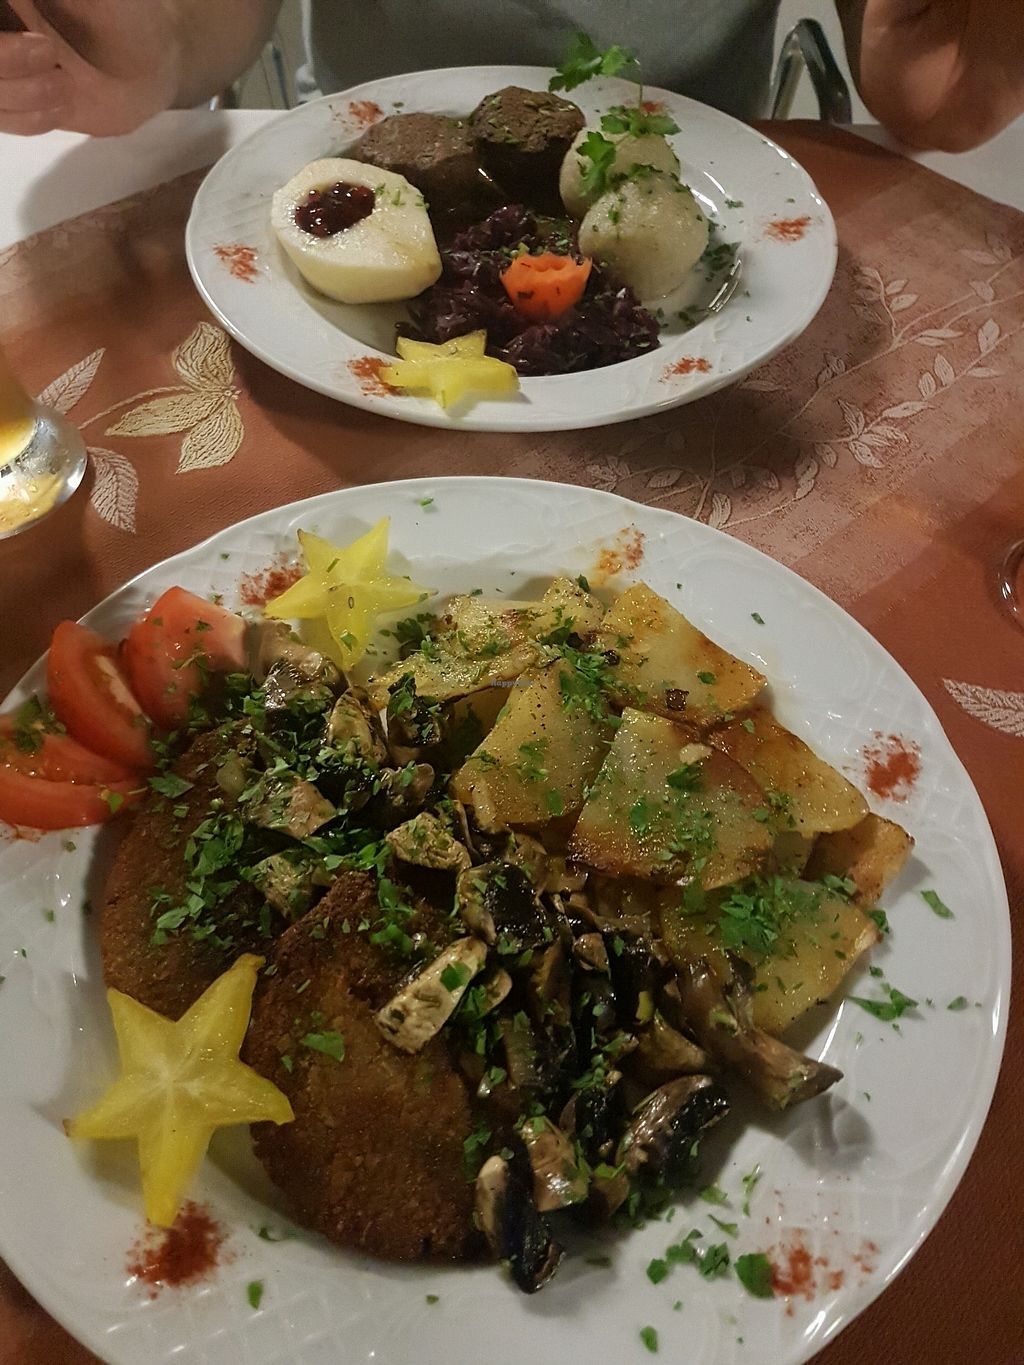 """Photo of Meson Aleman Atlantis  by <a href=""""/members/profile/MissEni78"""">MissEni78</a> <br/>new dishes: Schnitzel and nut roast <br/> October 30, 2017  - <a href='/contact/abuse/image/74104/320241'>Report</a>"""